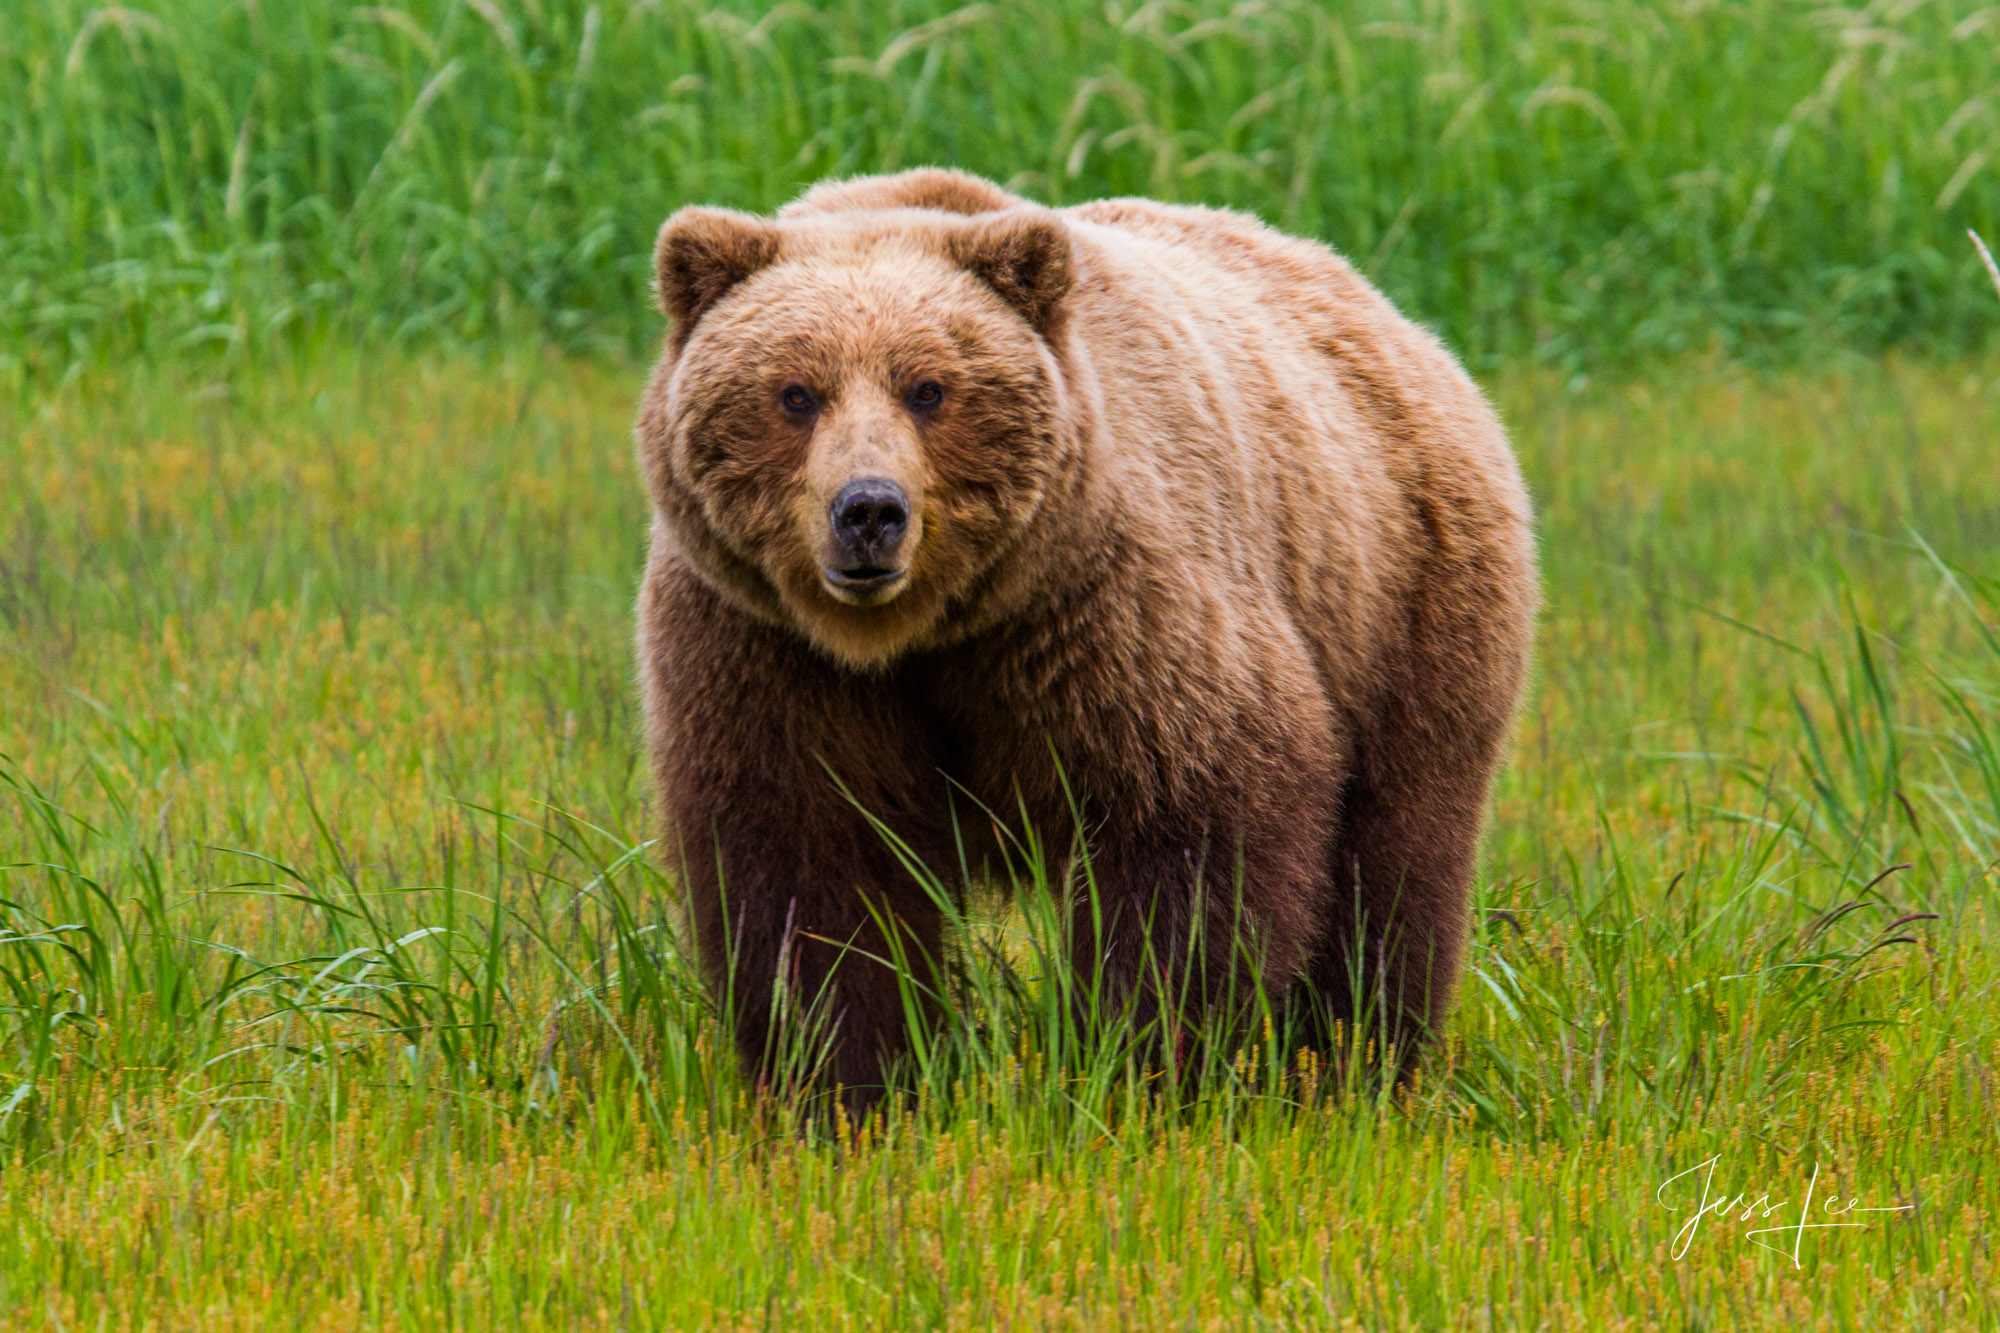 Alaska Grizzlys, Cubs, Moms, Bores, Limited edition of 800 prints. These Grizzly bear fine art wildlife photographs are offered...